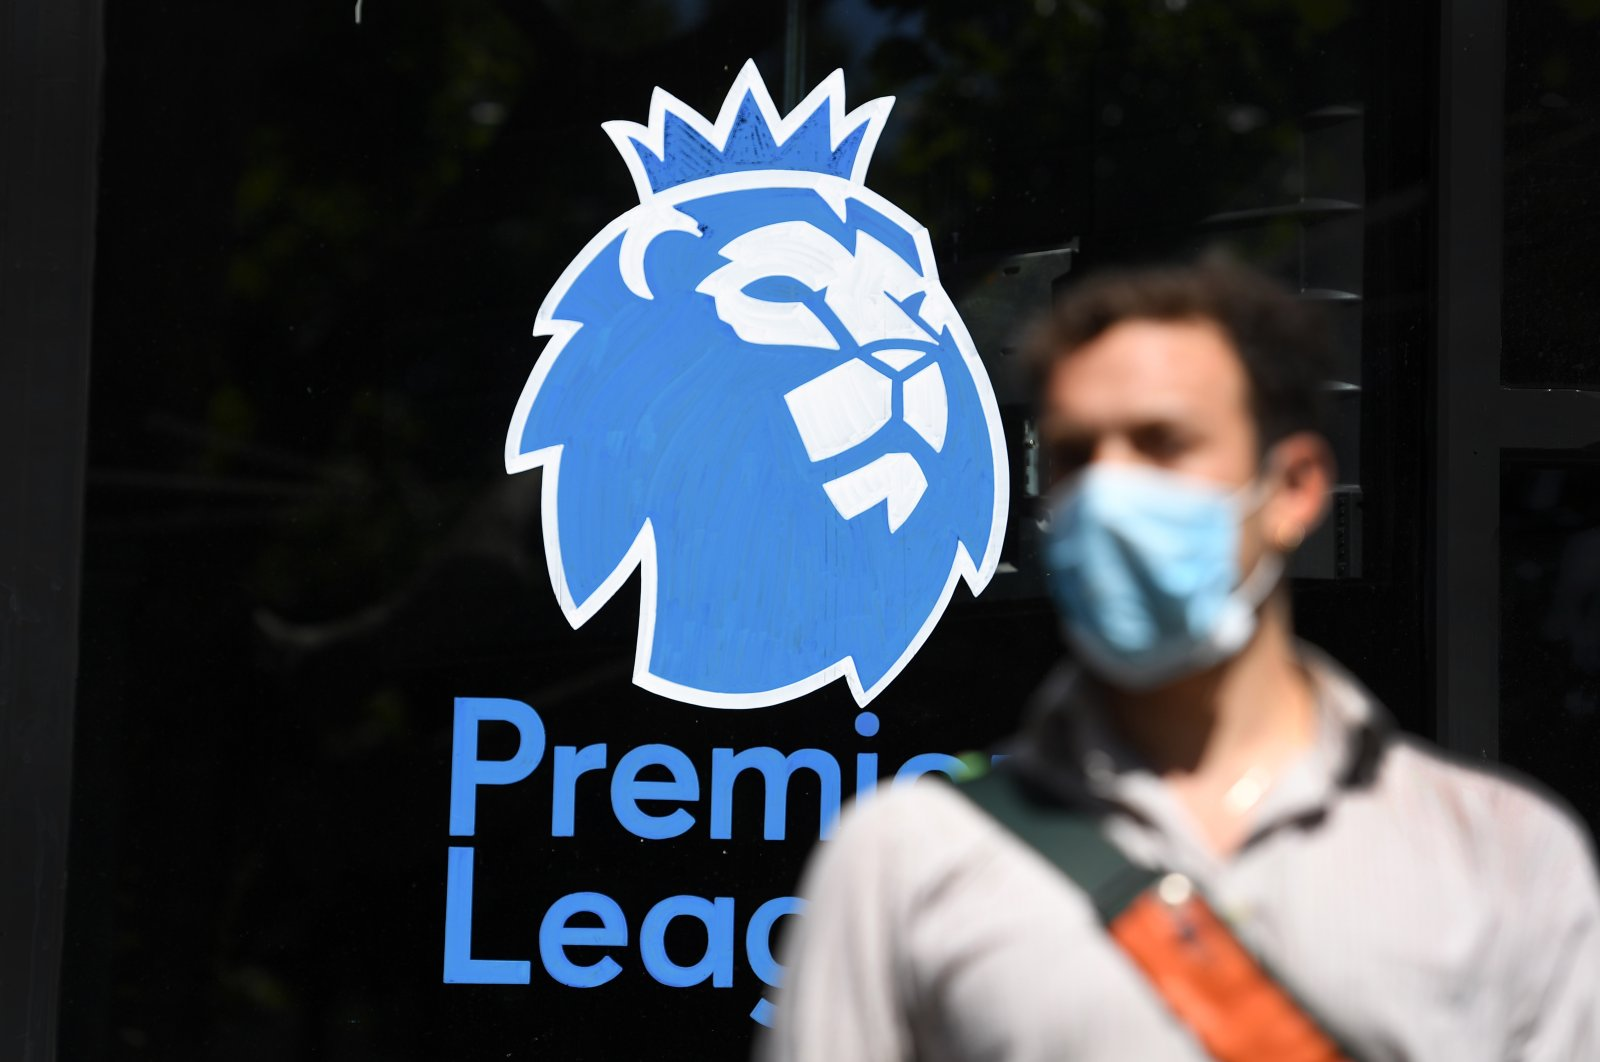 A man wearing a protective mask walks past the English Premier League logo in London, May 29, 2020. (EPA Photo)